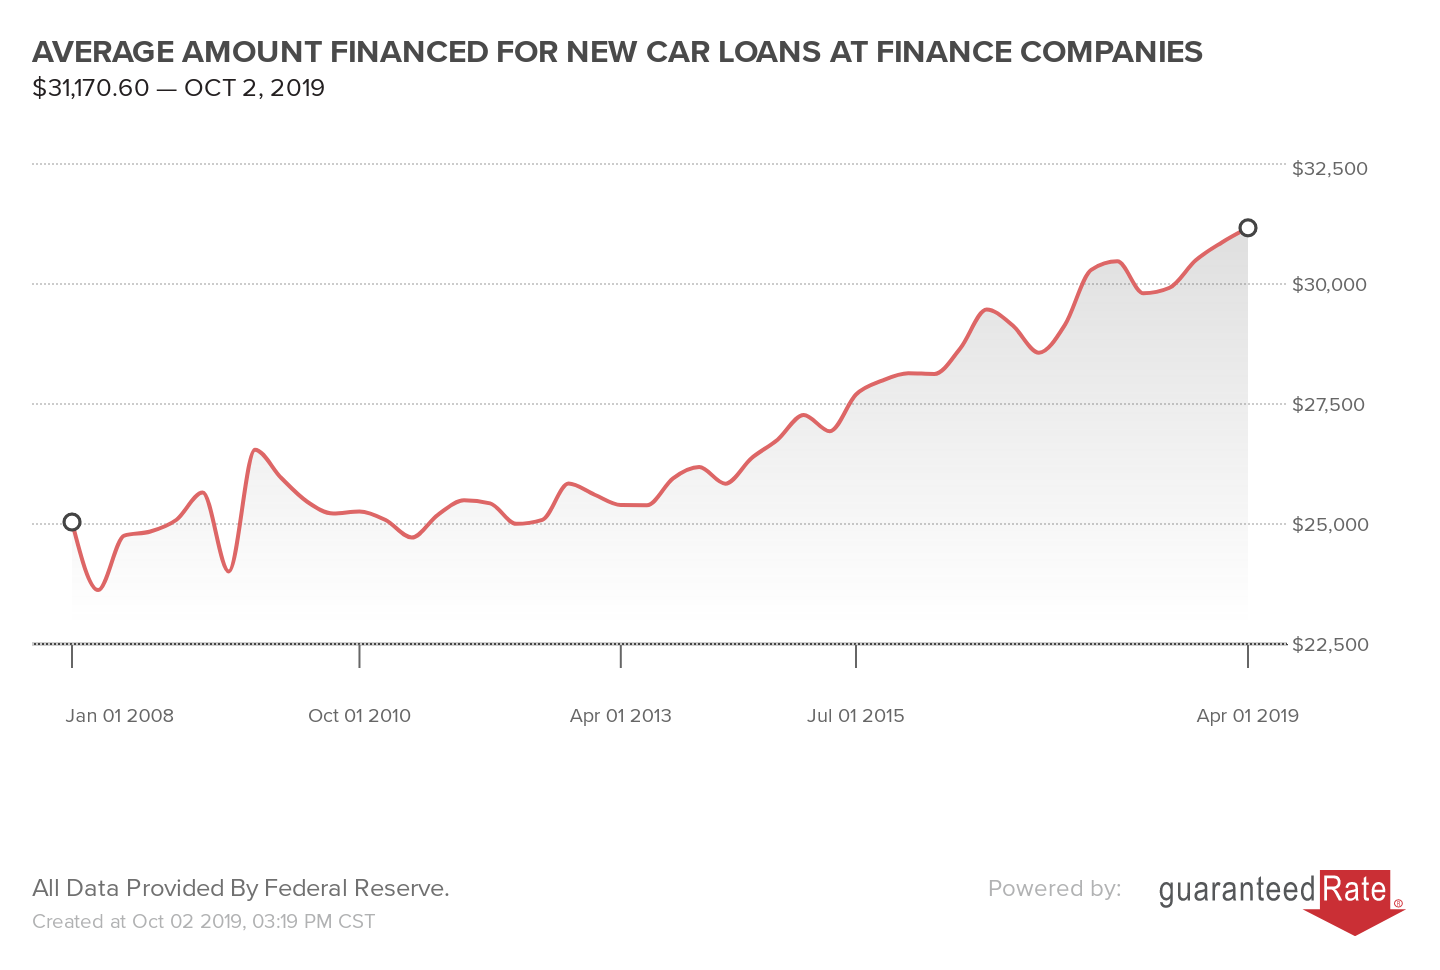 AVERAGE AMOUNT FINANCED FOR NEW CAR LOANS AT FINANCE COMPANIES